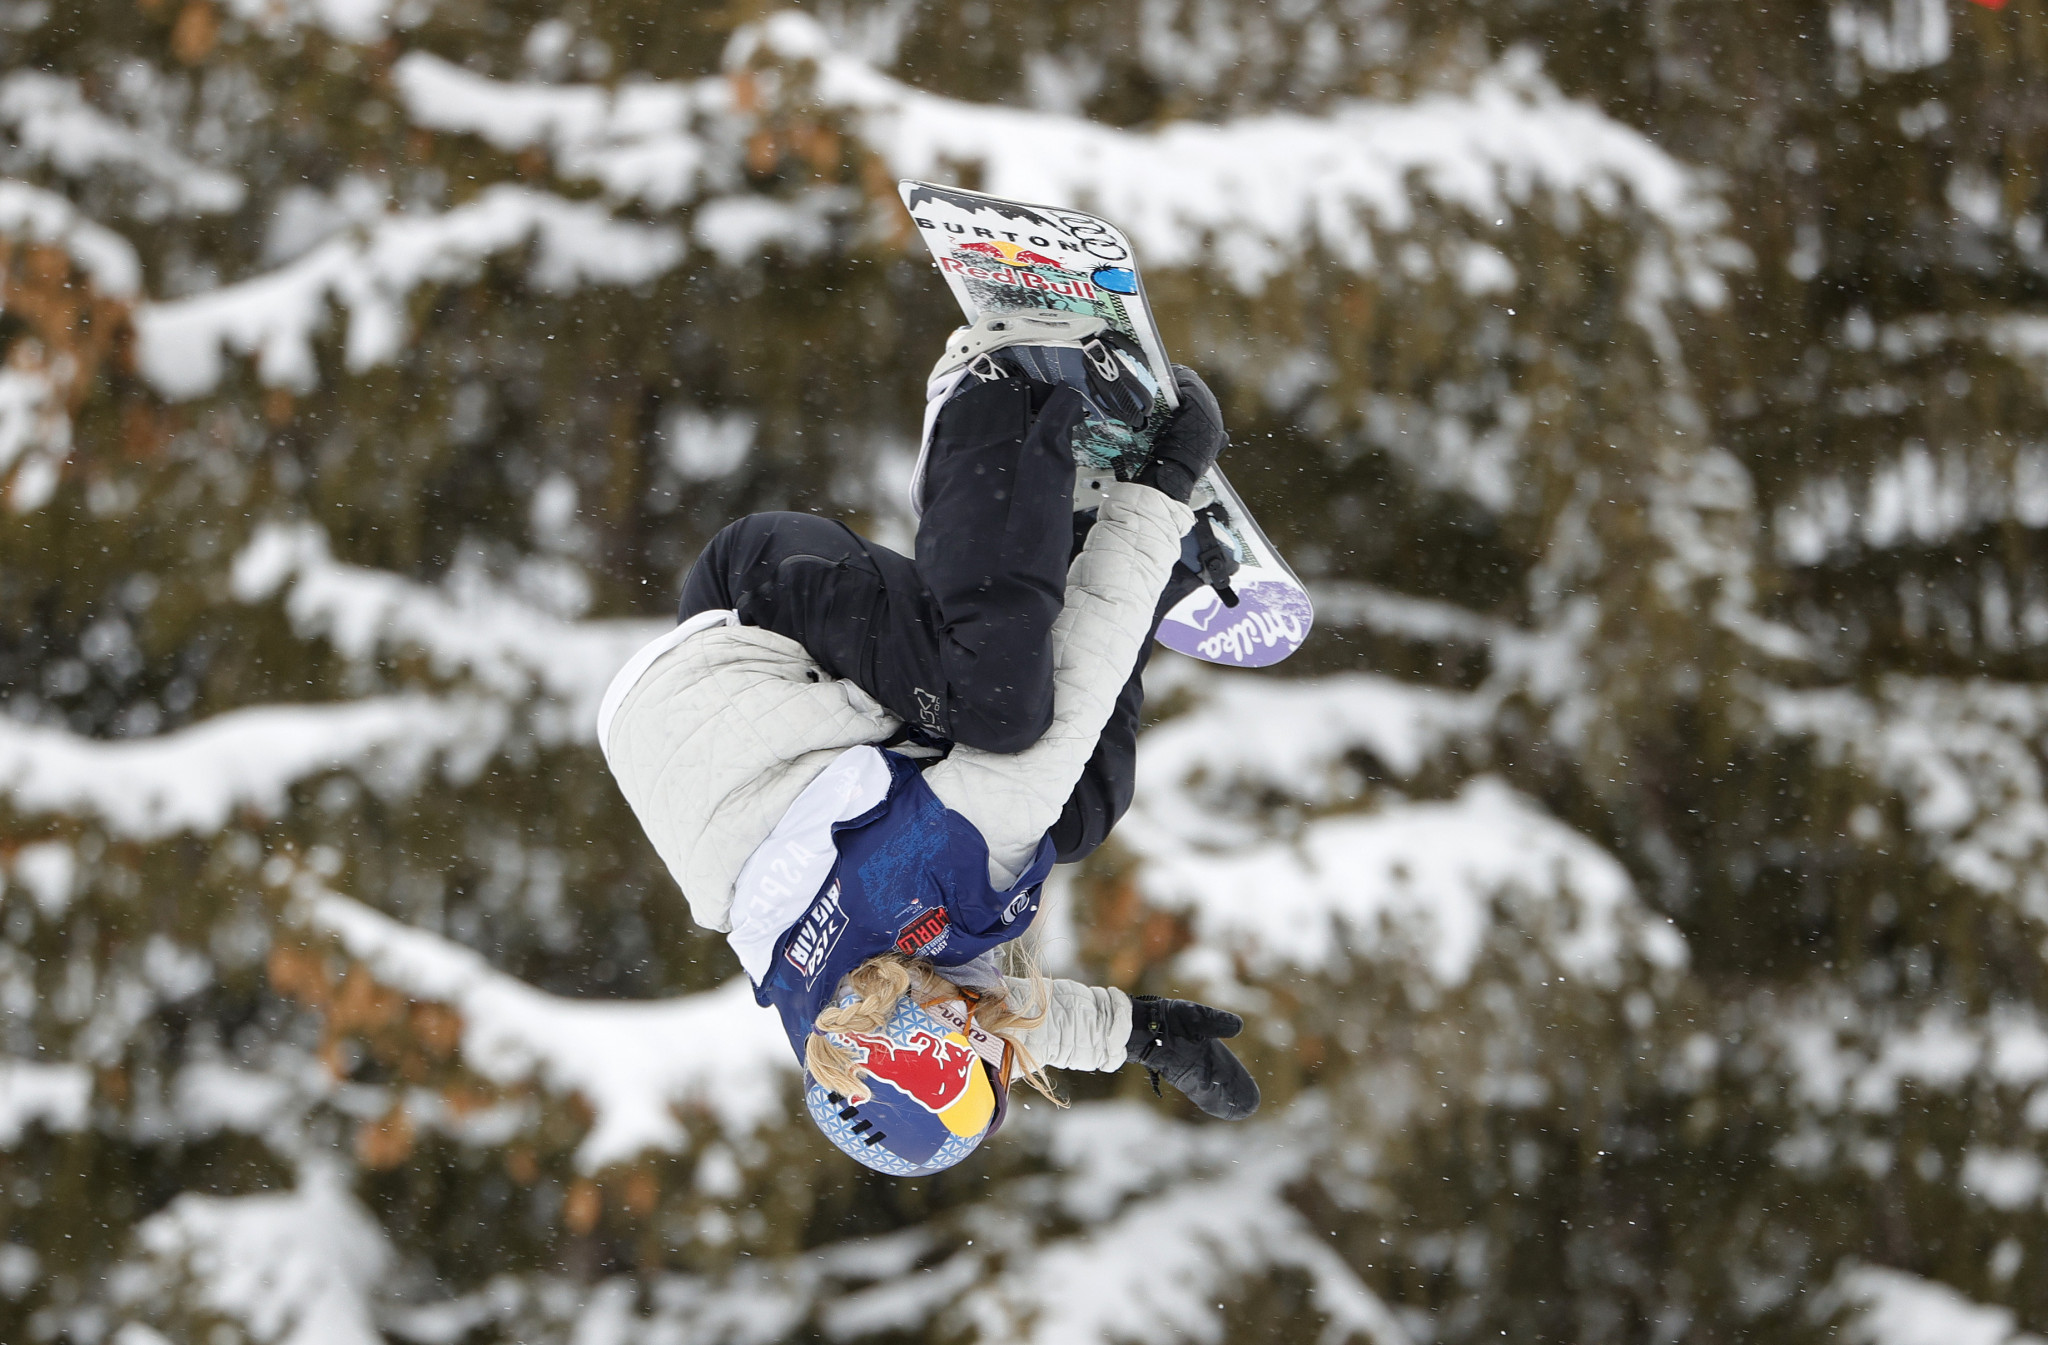 Reigning Olympic and world champion Anna Gasser topped qualification in the women's snowboard big air contest in Aspen ©Getty Images